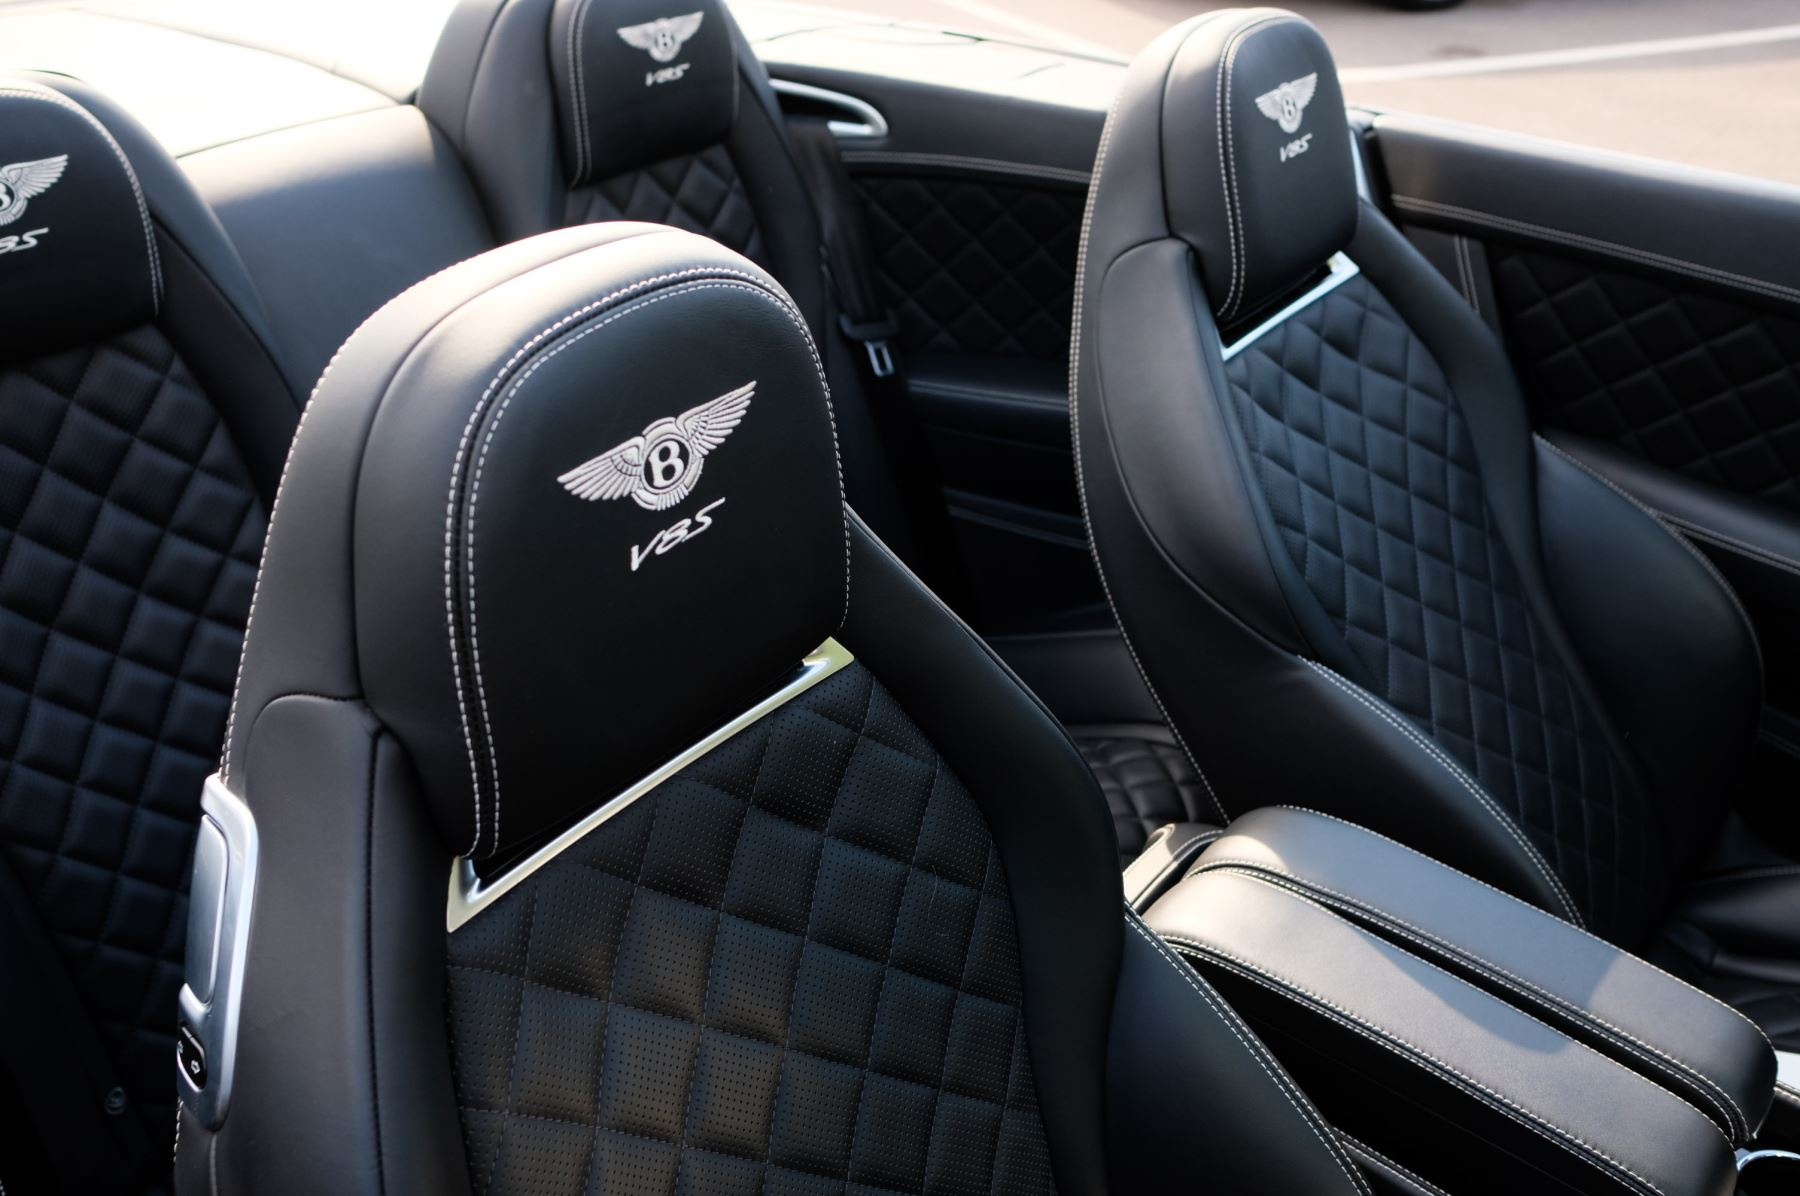 Bentley Continental GTC 4.0 V8 S Mulliner Driving Spec - Ventilated Front Seats with Massage Function image 19